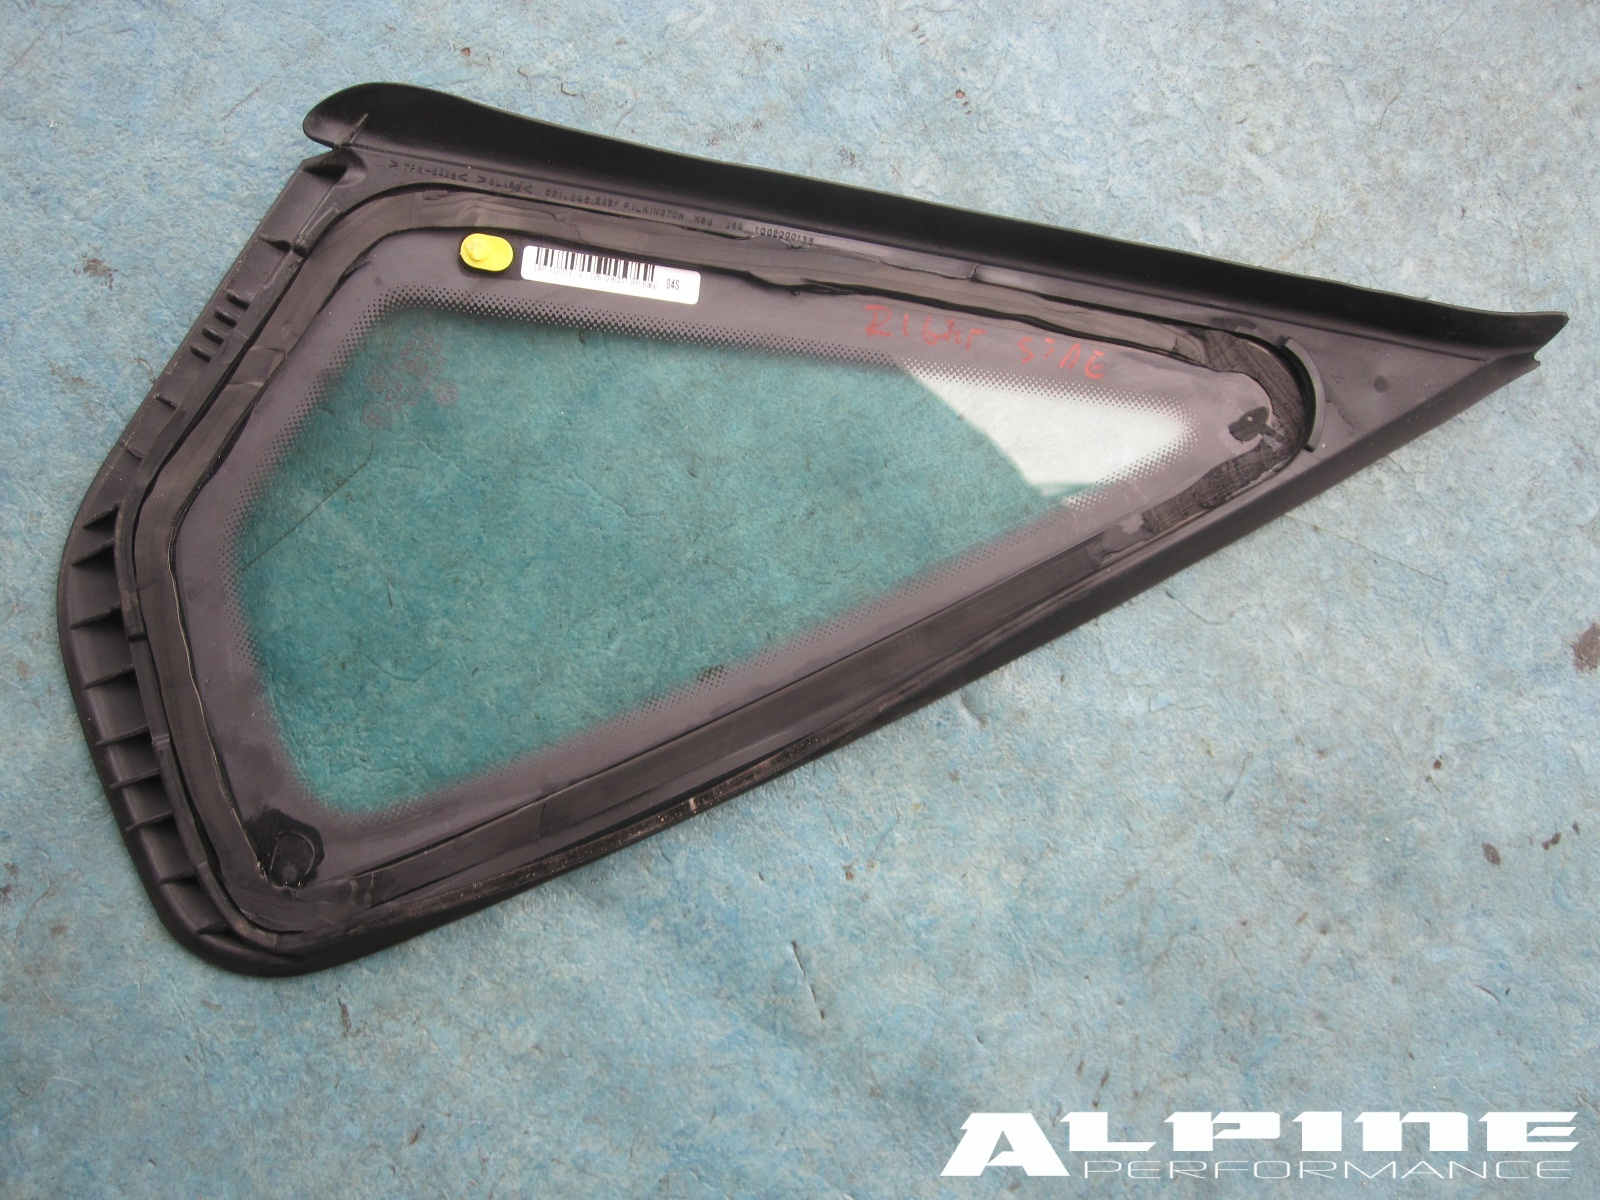 Origianal OEM PASSAT REAR RIGHT SIDE QUARTER PANEL TRIANGULAR WINDOW GLASS - OEM parts